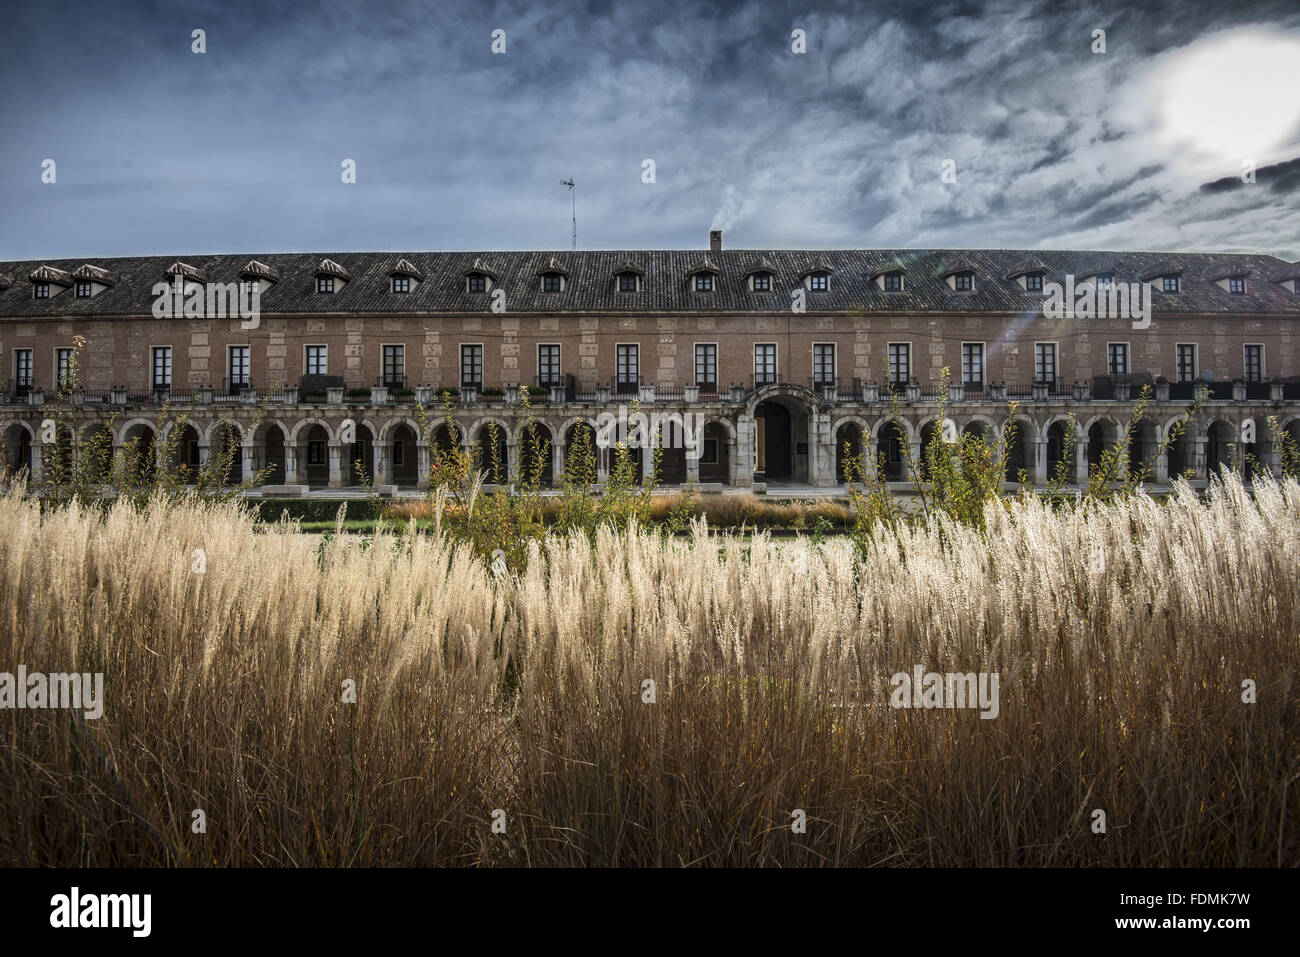 House Offices y Caballeros of the sixteenth century with flower garden in foreground - Stock Image